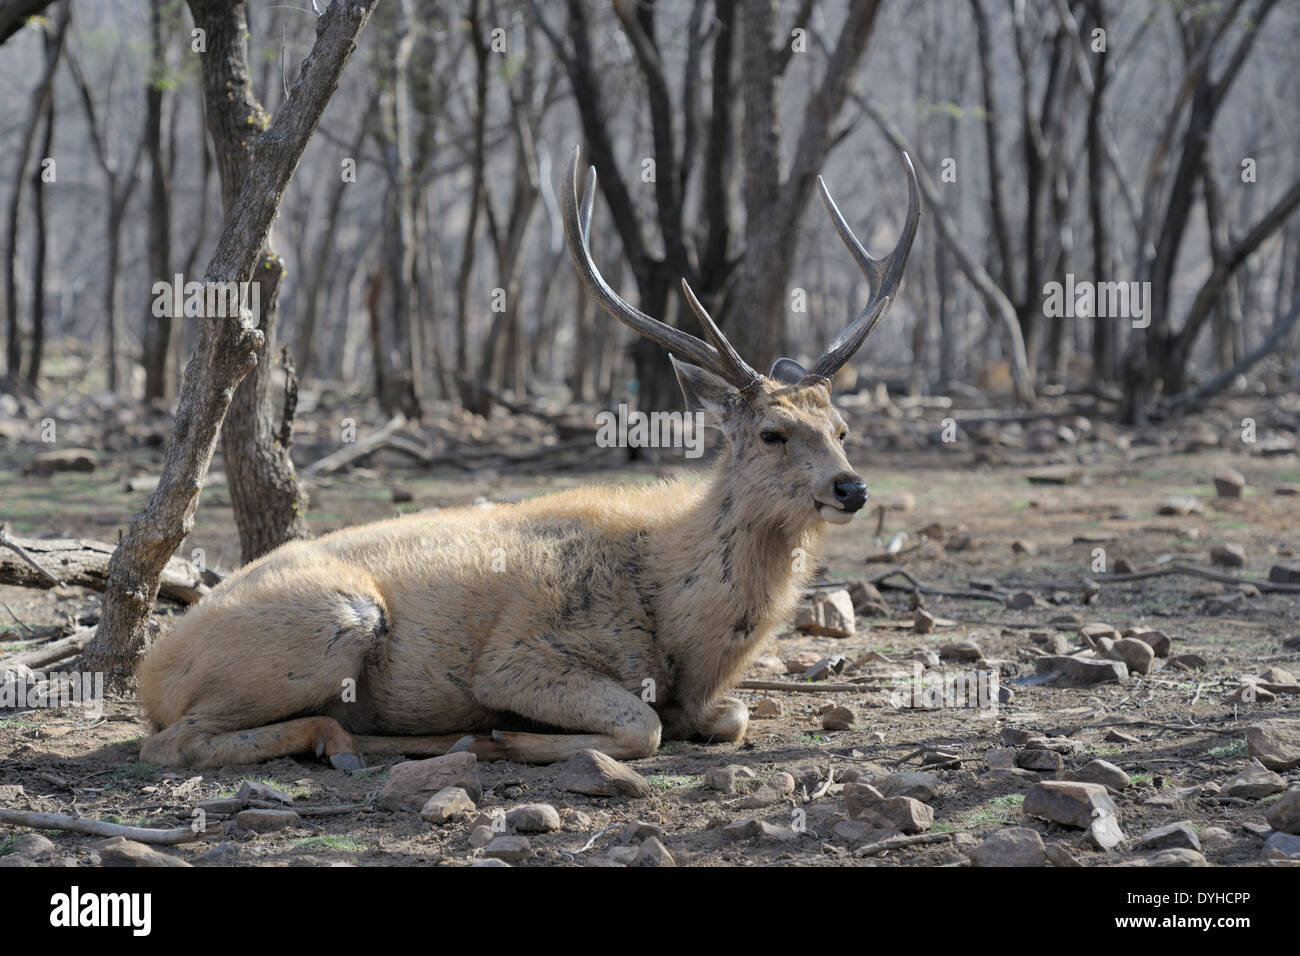 Sambar deer (Rusa unicolor) lying on the ground in the forest. - Stock Image